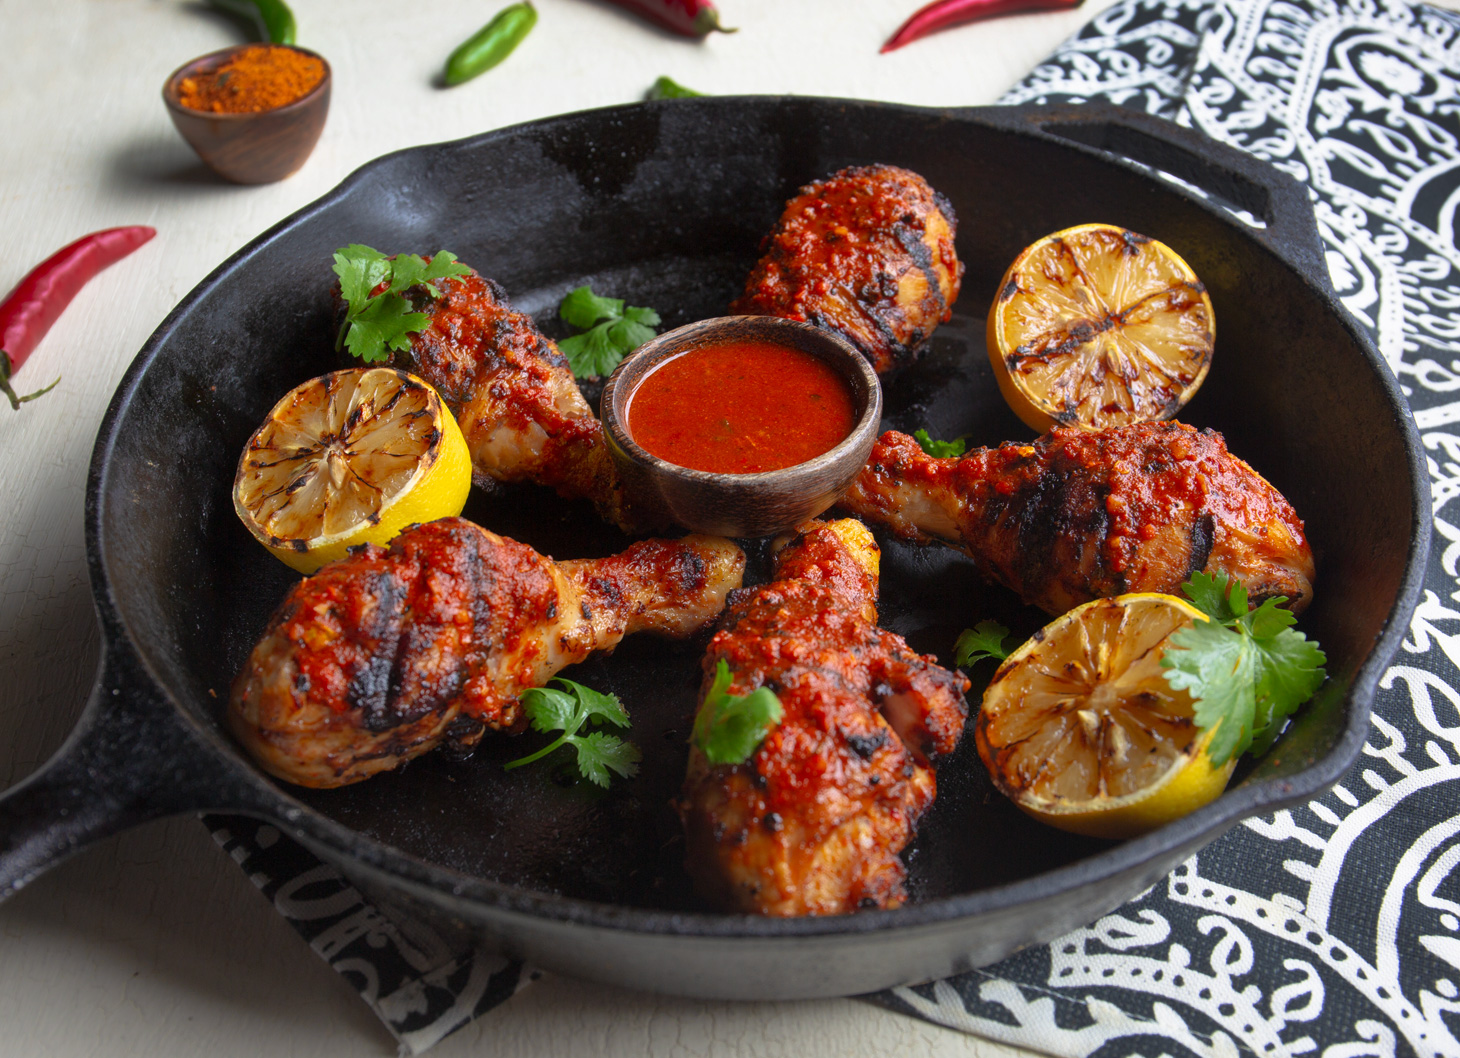 10. Spicy Piri Piri Chicken  - Portuguese Piri Piri is sweet, smoky and addictively spicy. This recipe uses our Piri Piri Sauce Starter as both a marinade and sauce for tender chicken legs.